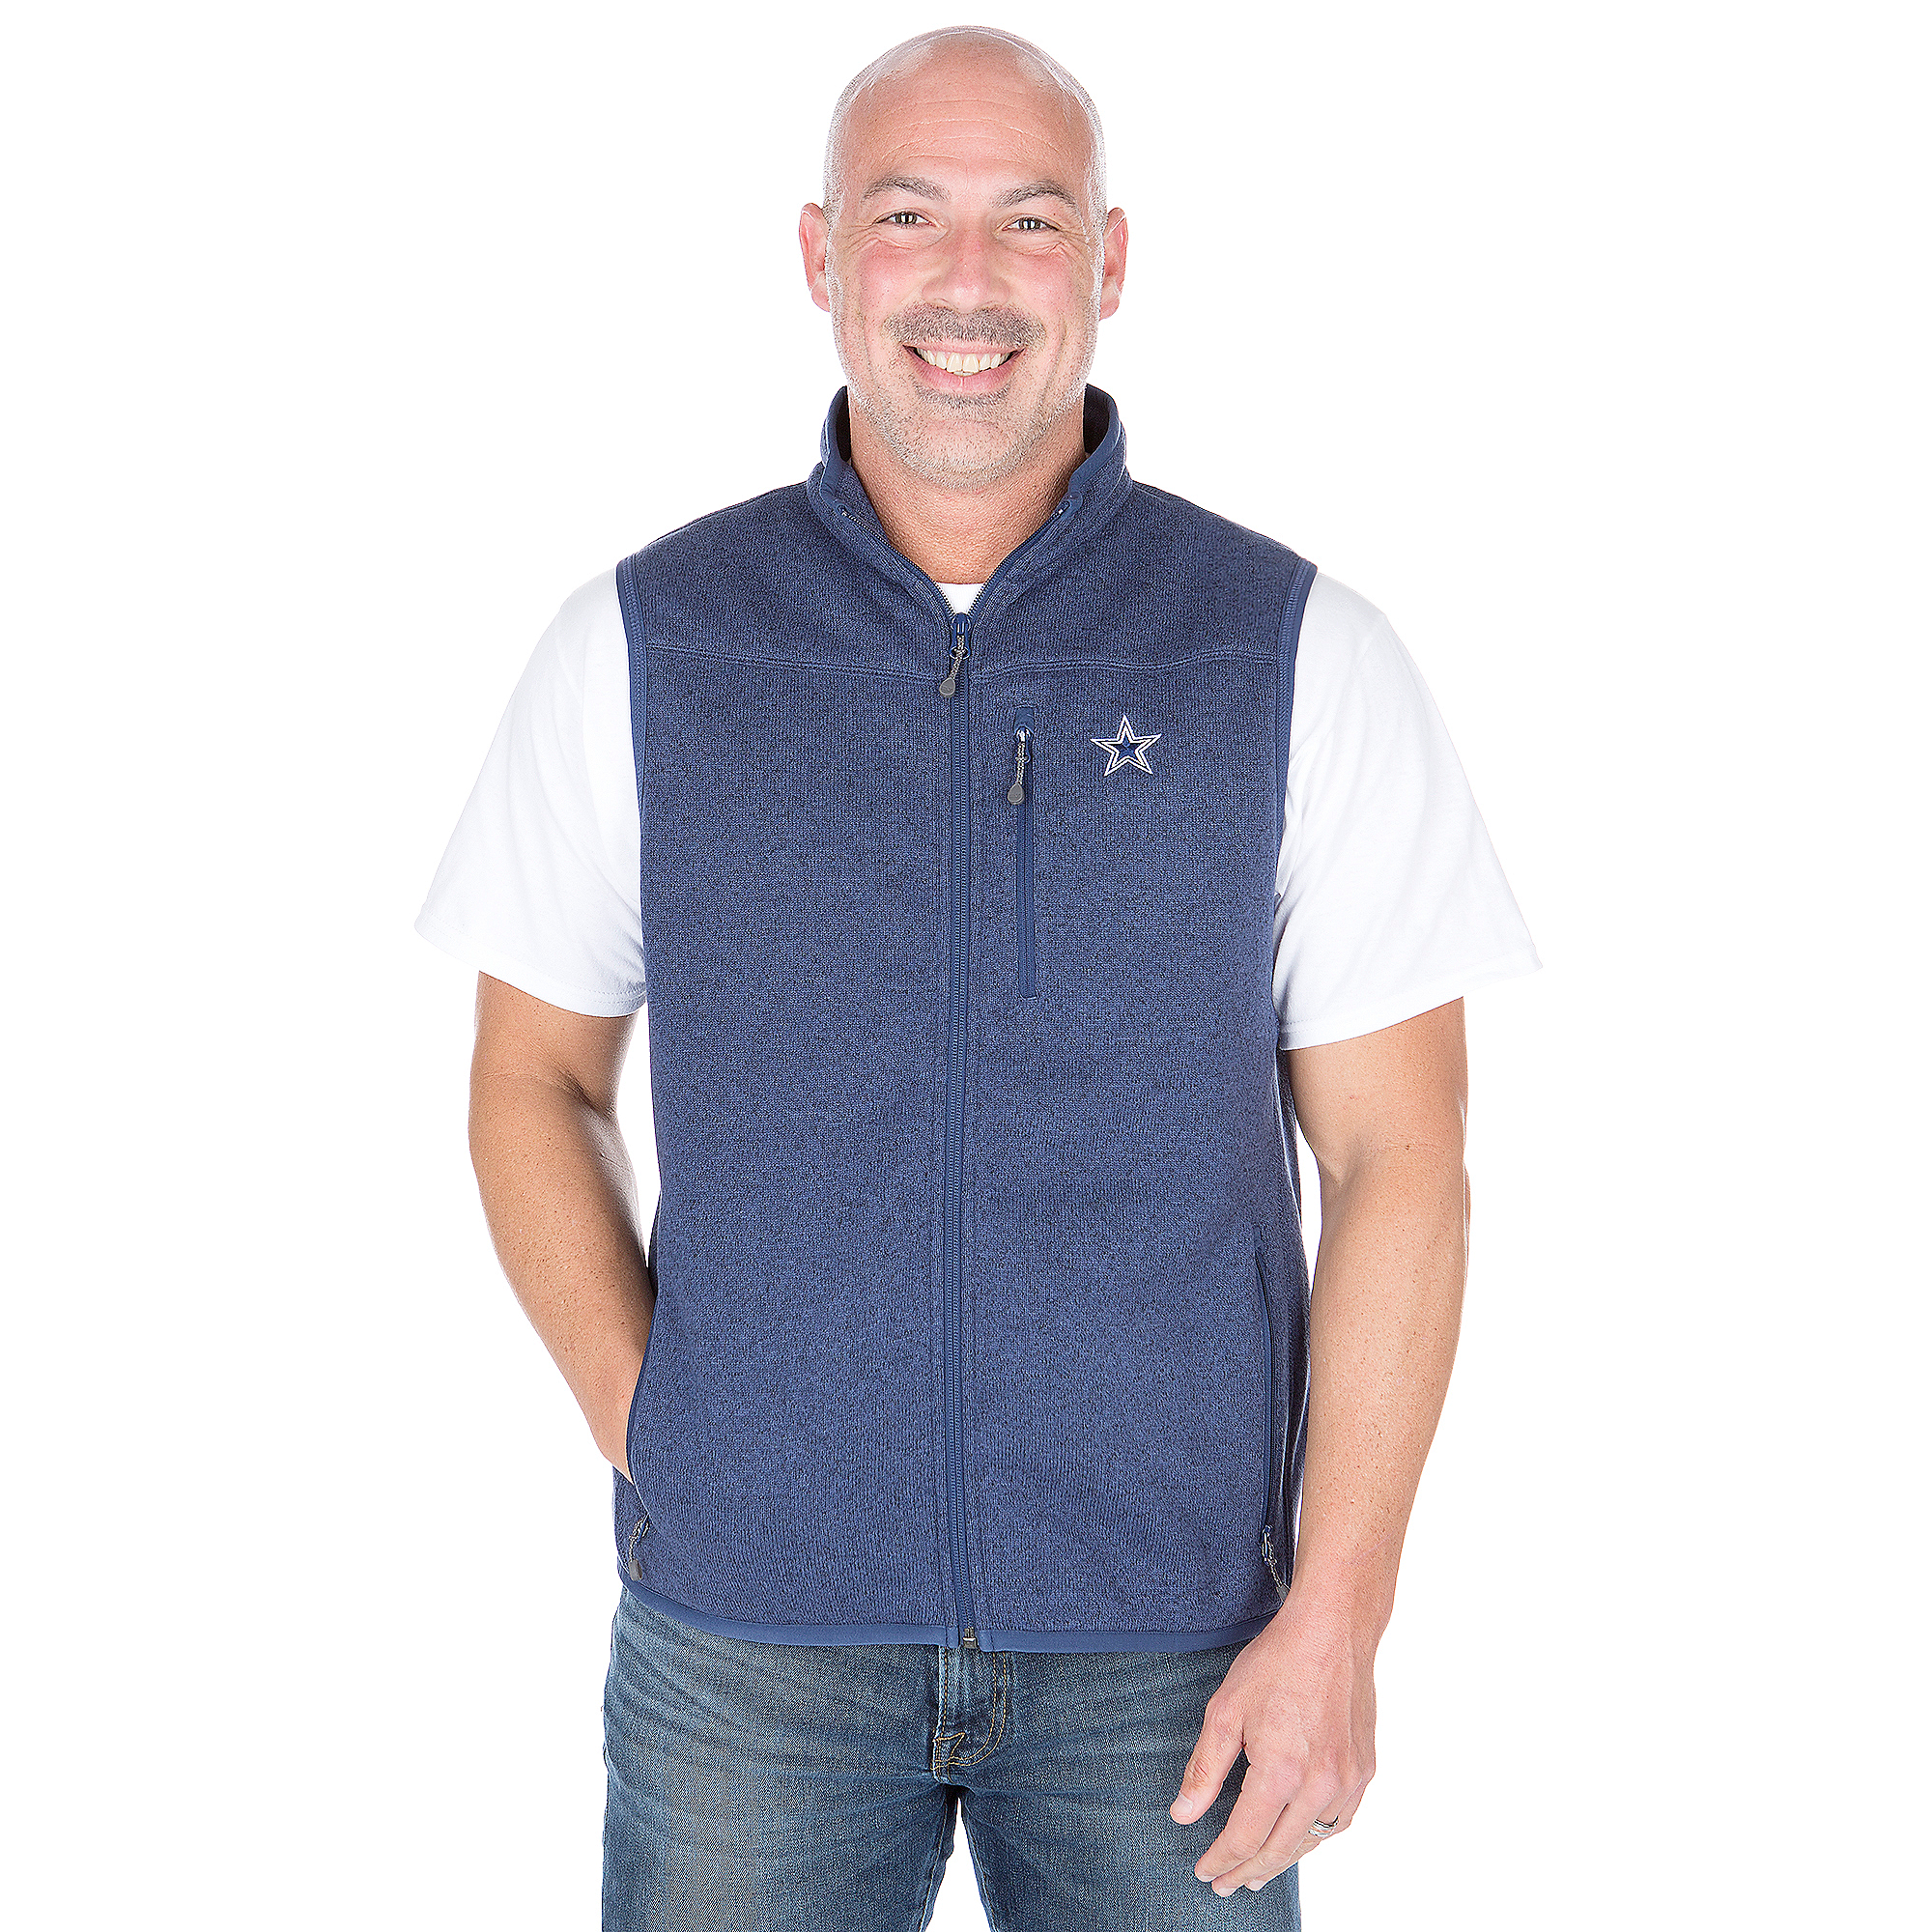 Dallas Cowboys Vineyard Vines Sweater Fleece Vest